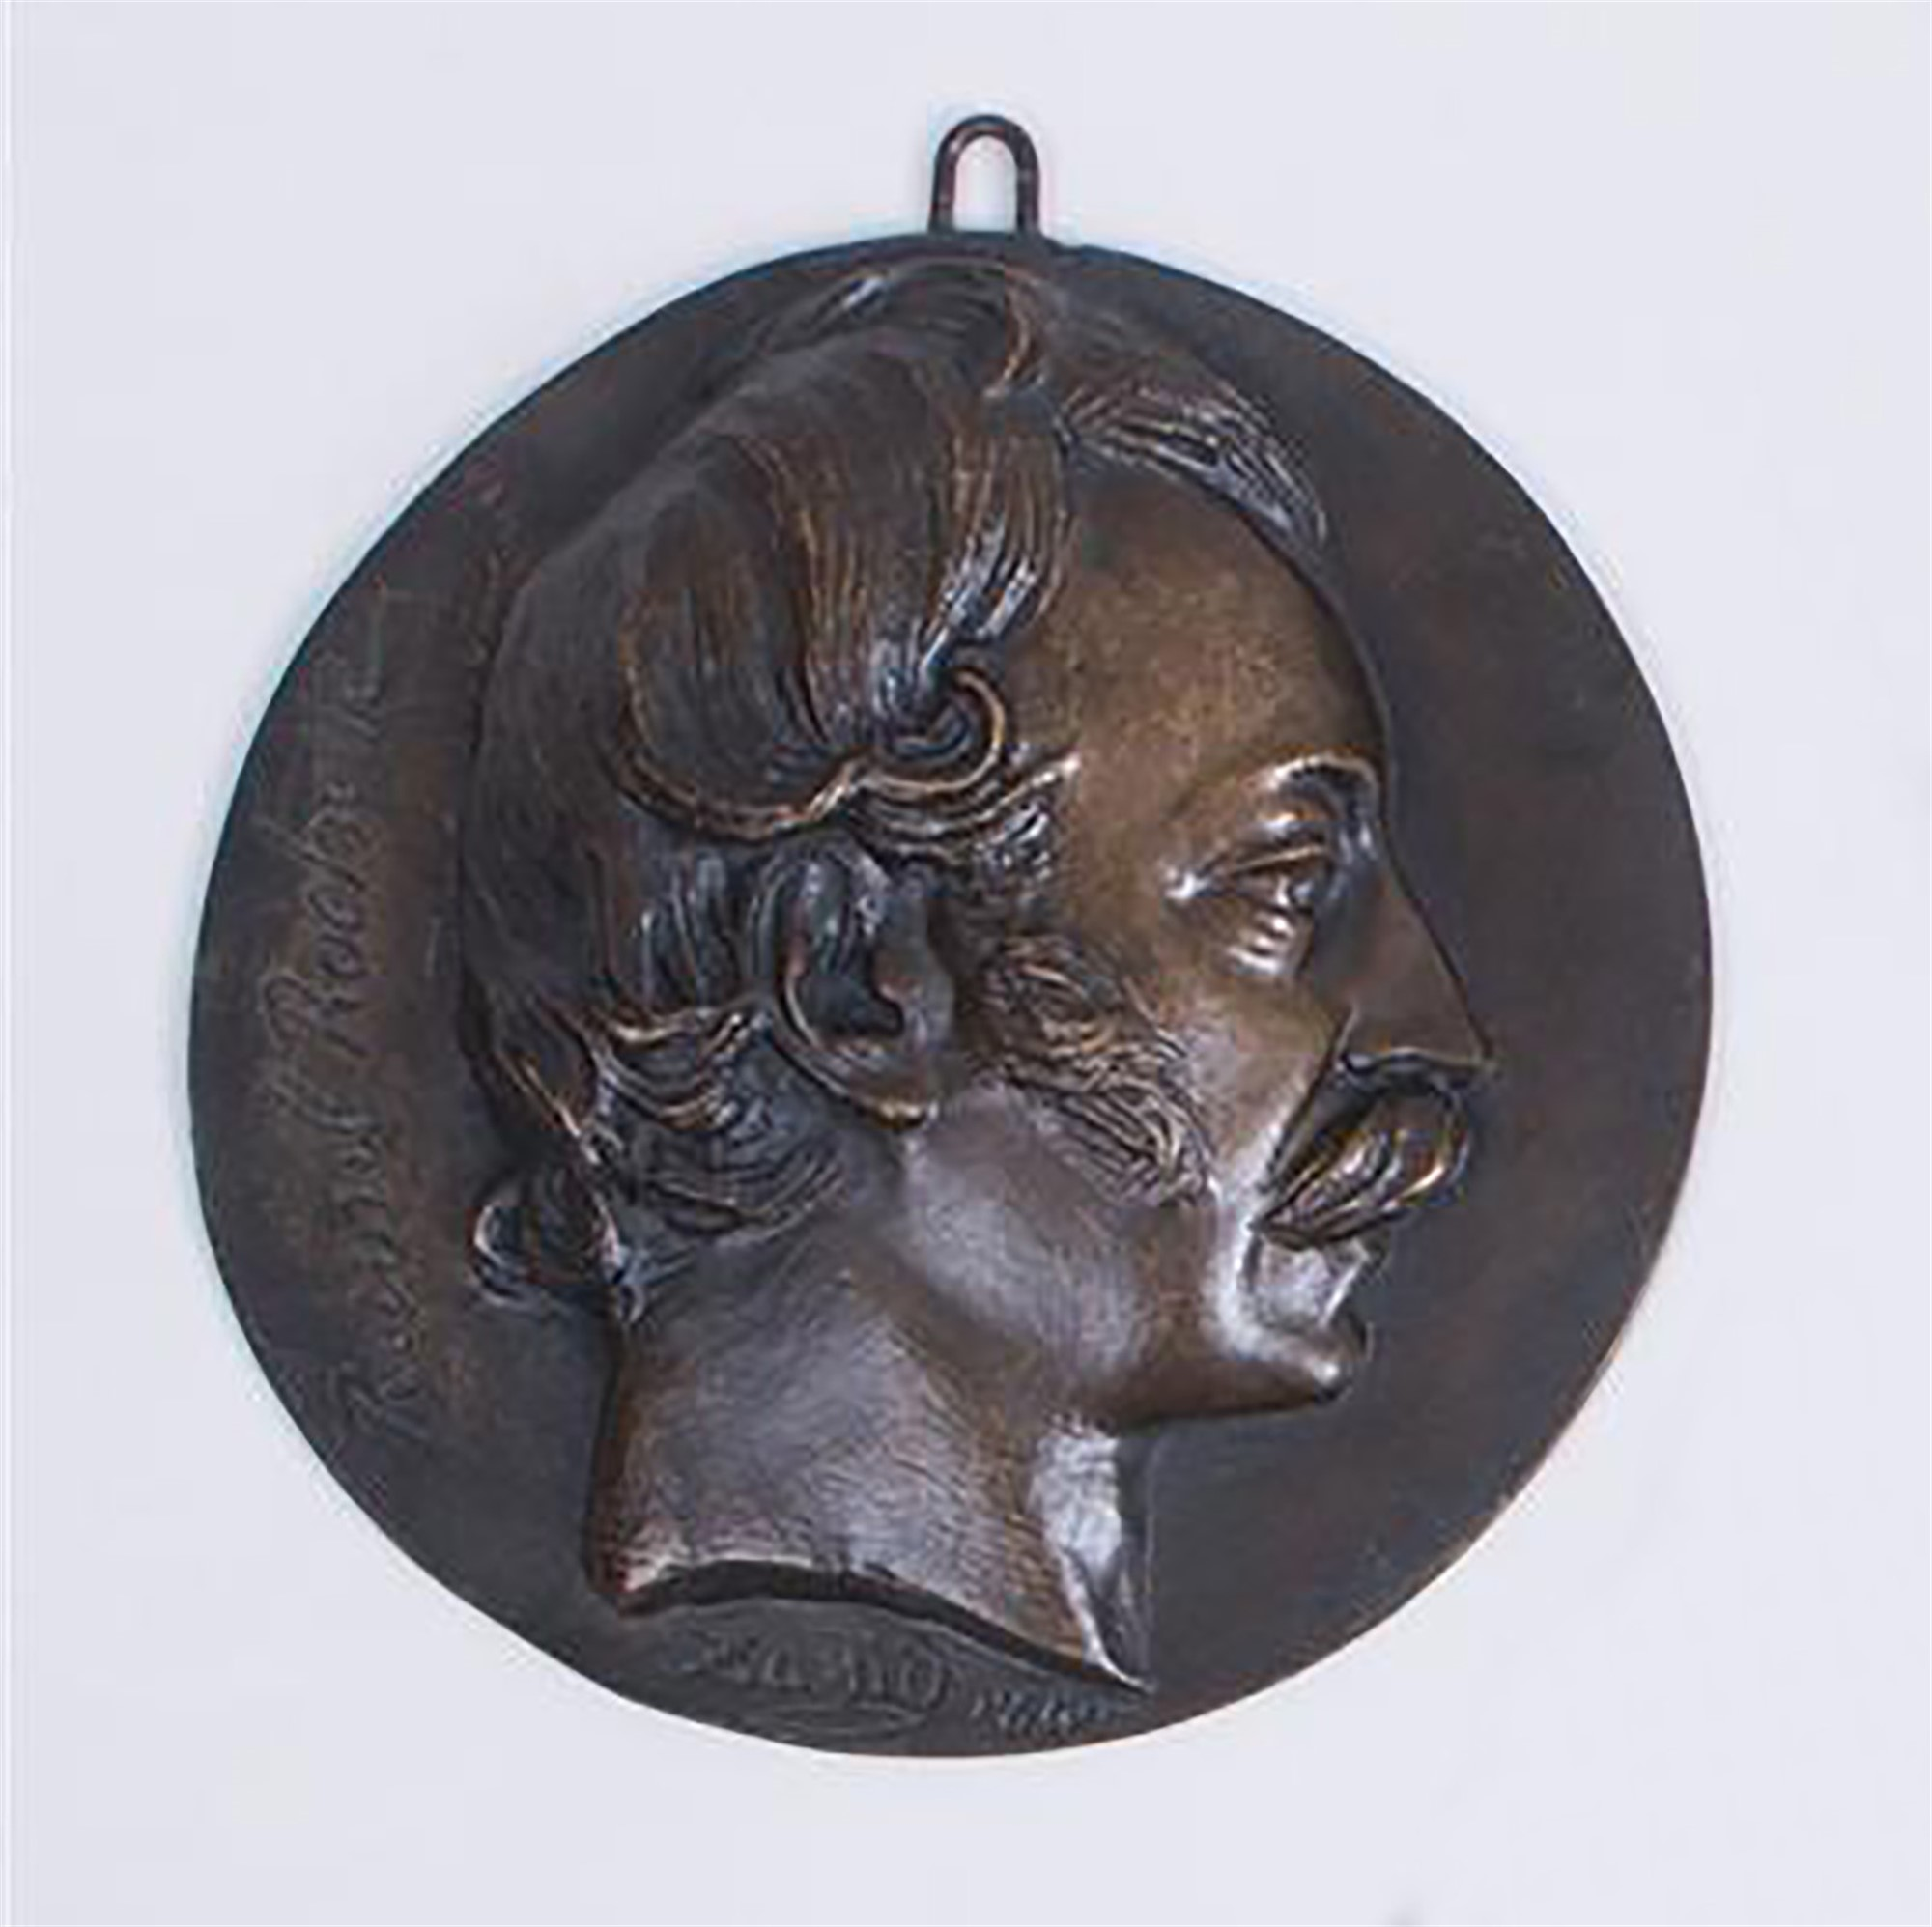 BRONZE RONDEL OF RAOUL ROCHETTE by David D'Angers